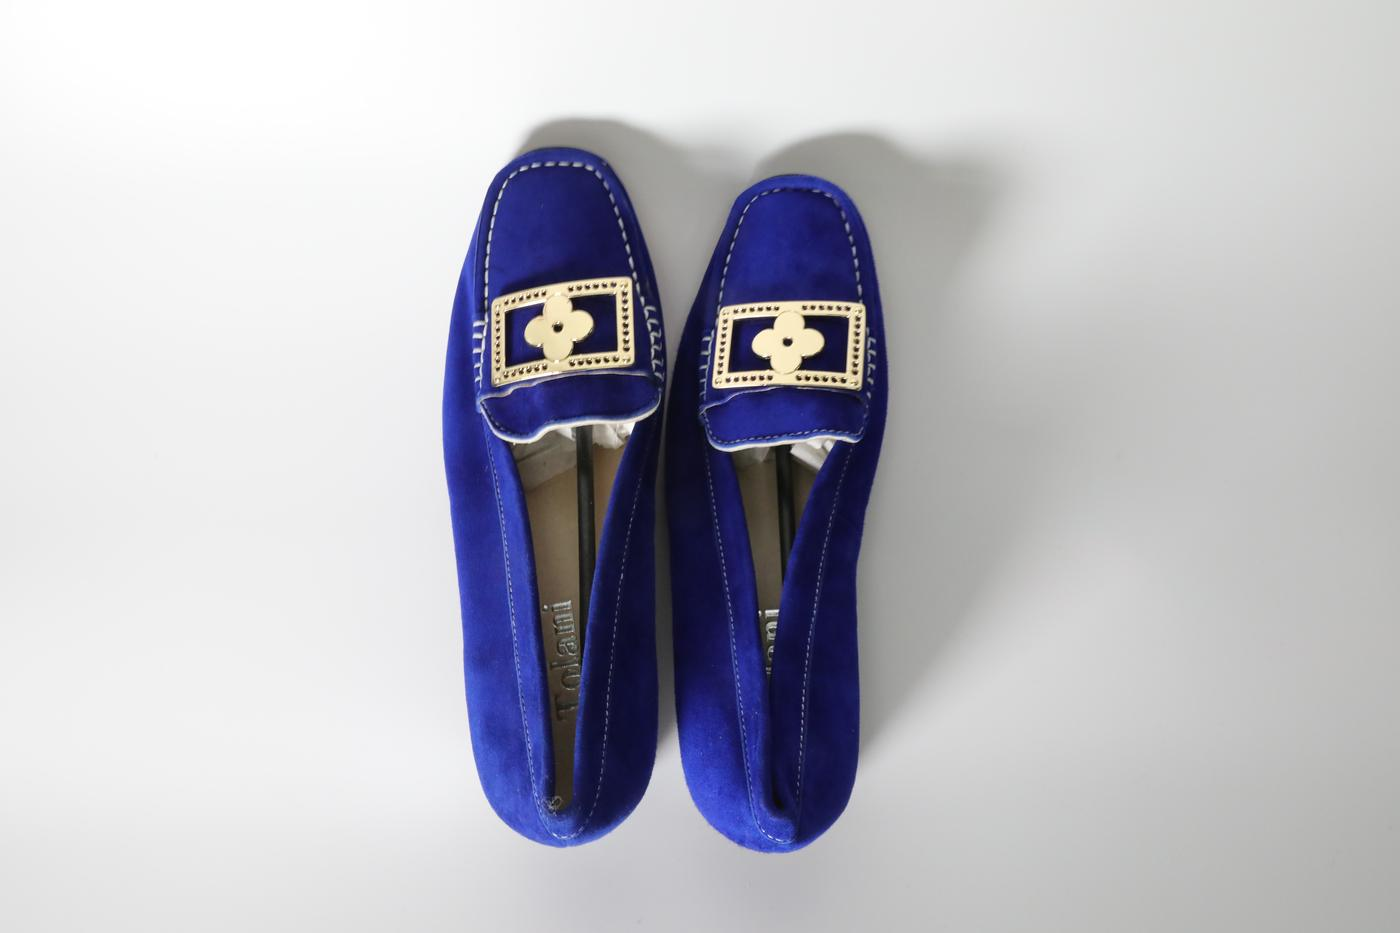 Blue loafer with gold clover styled buckle